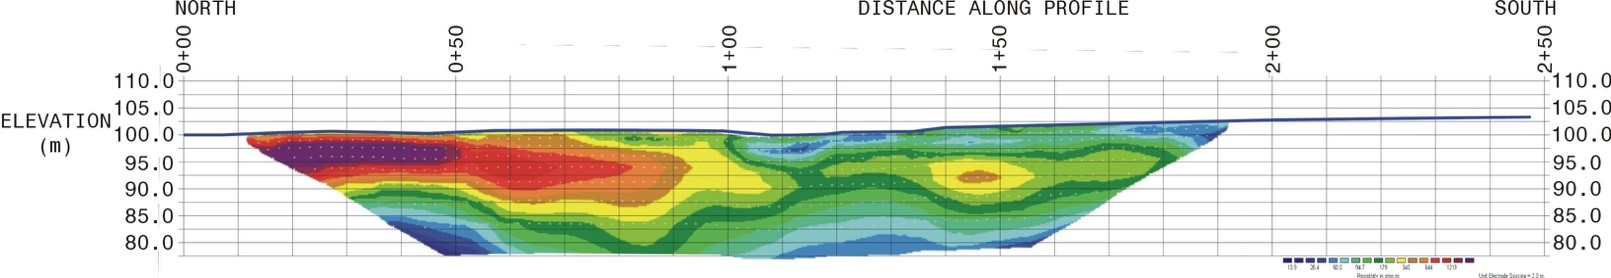 OVERLAPPING GEOPHYSICAL SURVEYS Fig10